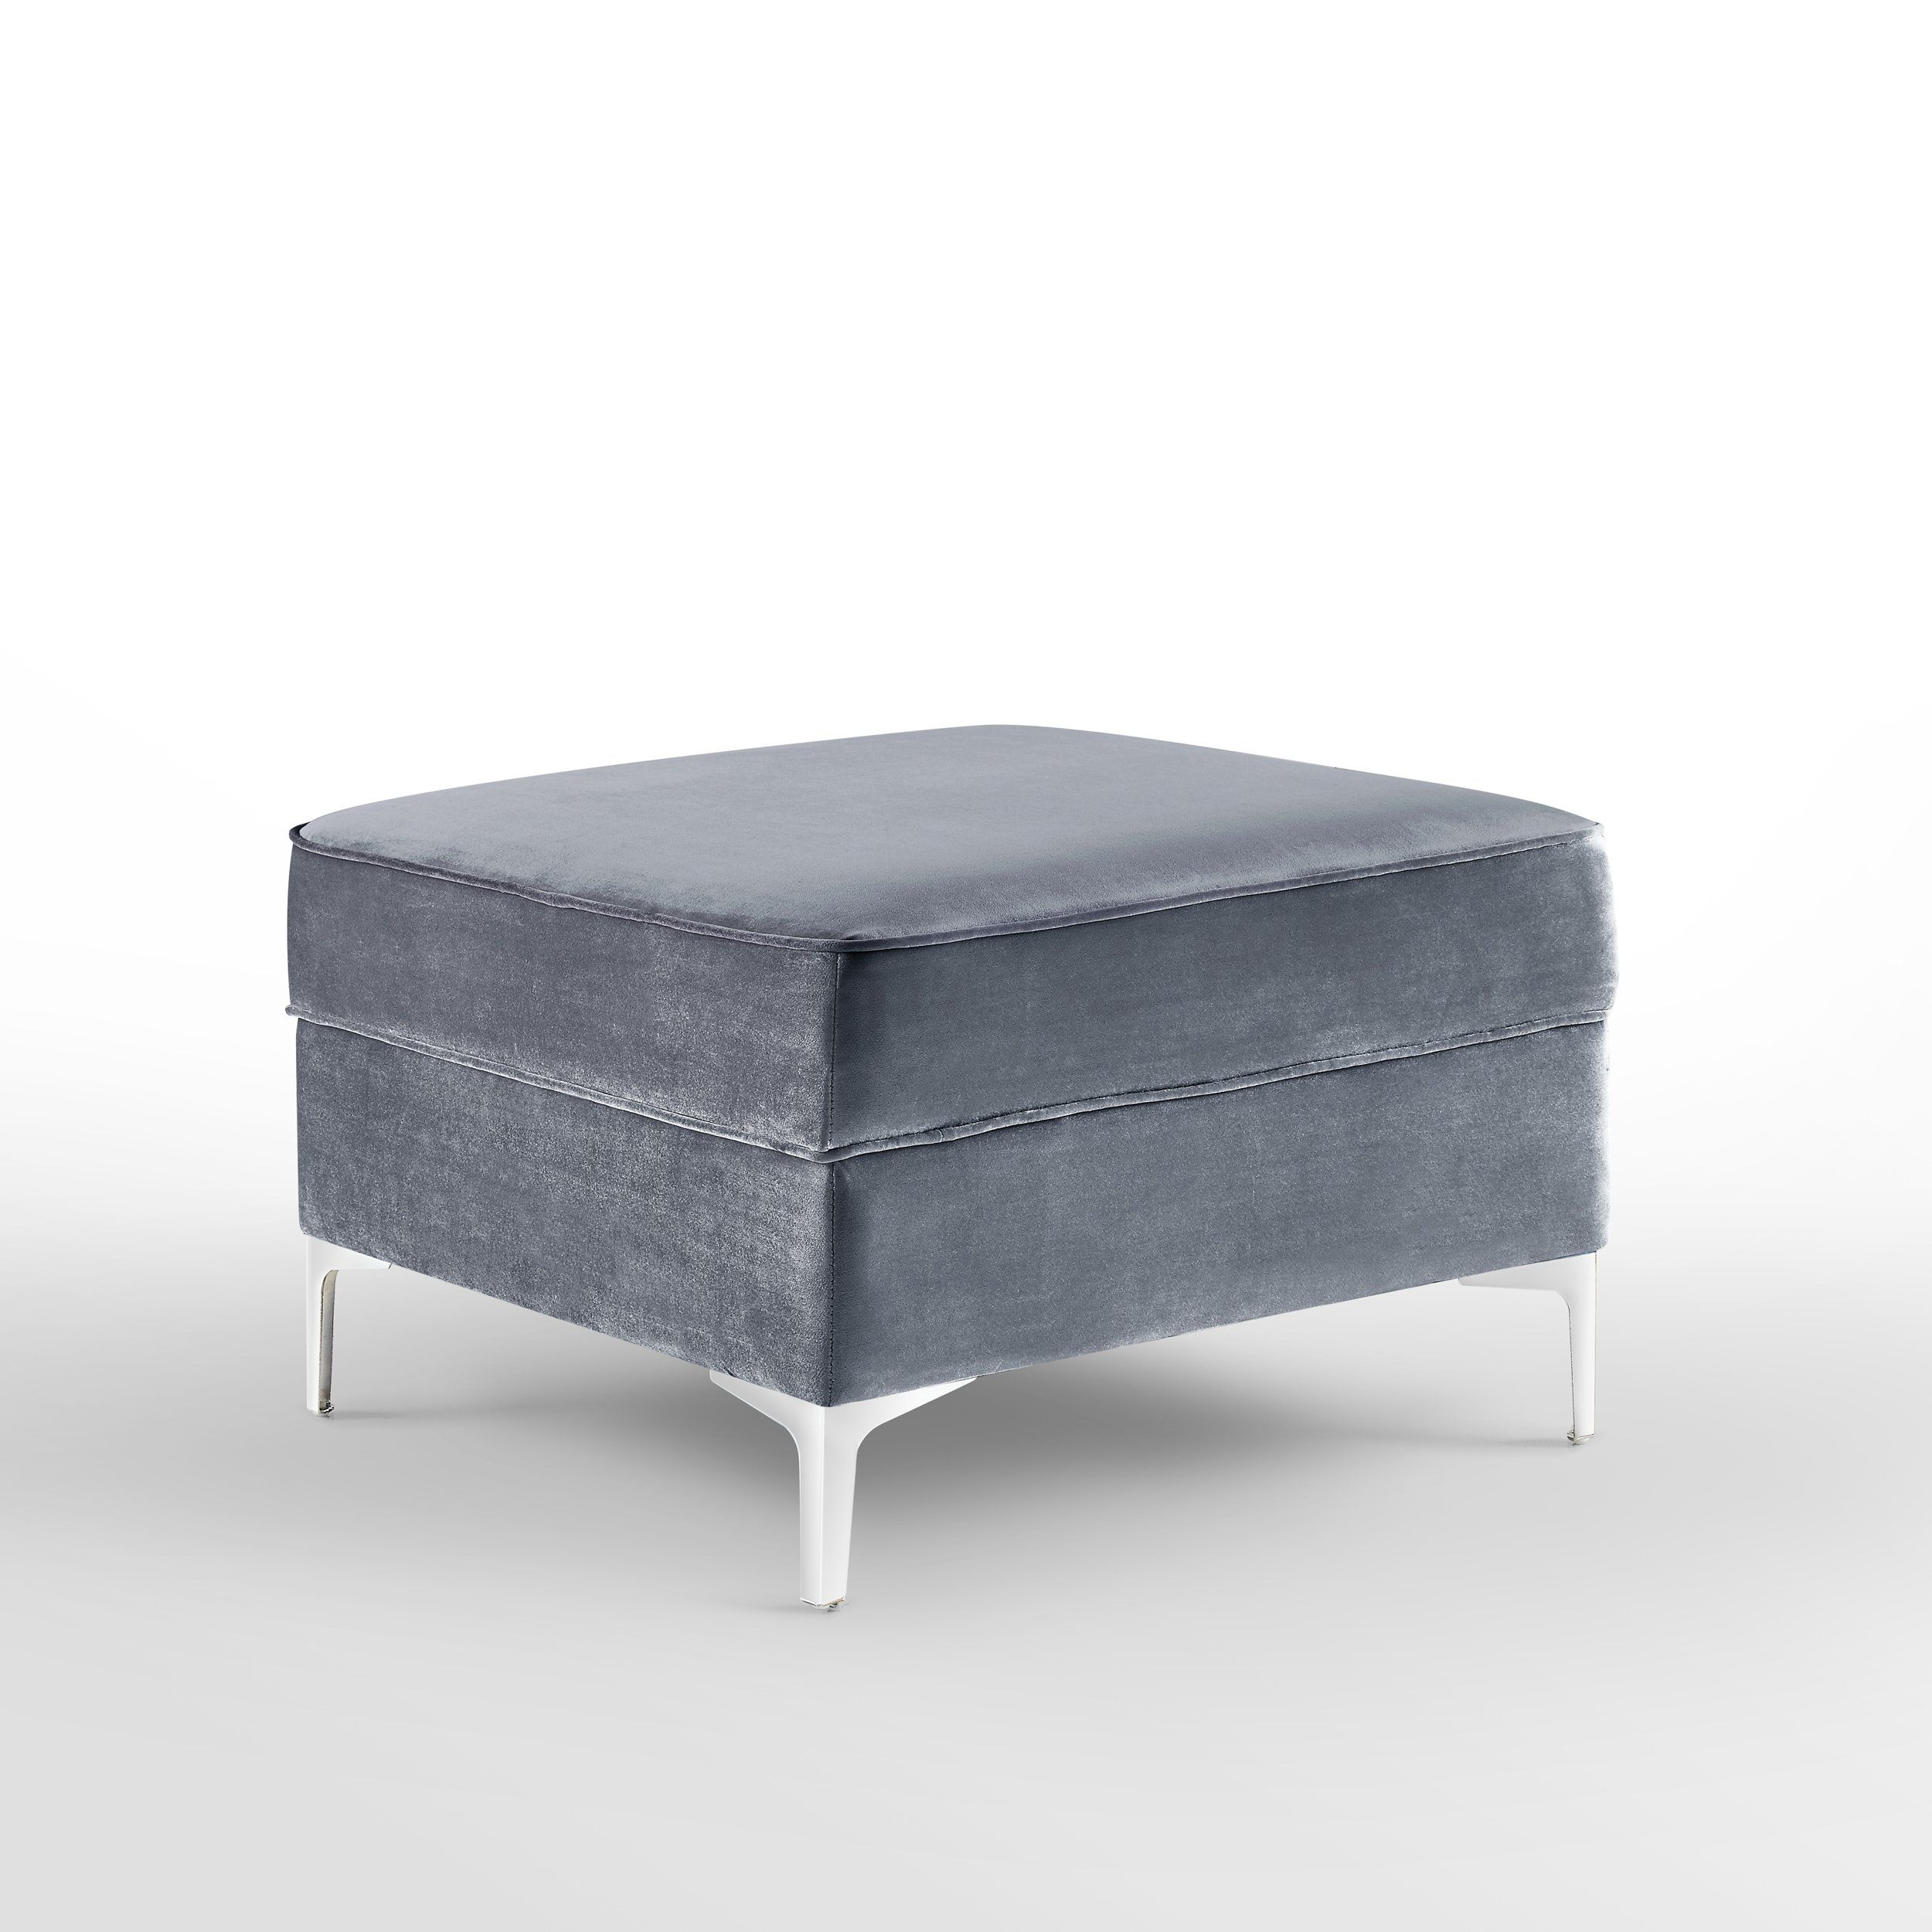 Awesome Giovanni Grey Velvet Storage Ottoman Chrome Legs Square Squirreltailoven Fun Painted Chair Ideas Images Squirreltailovenorg